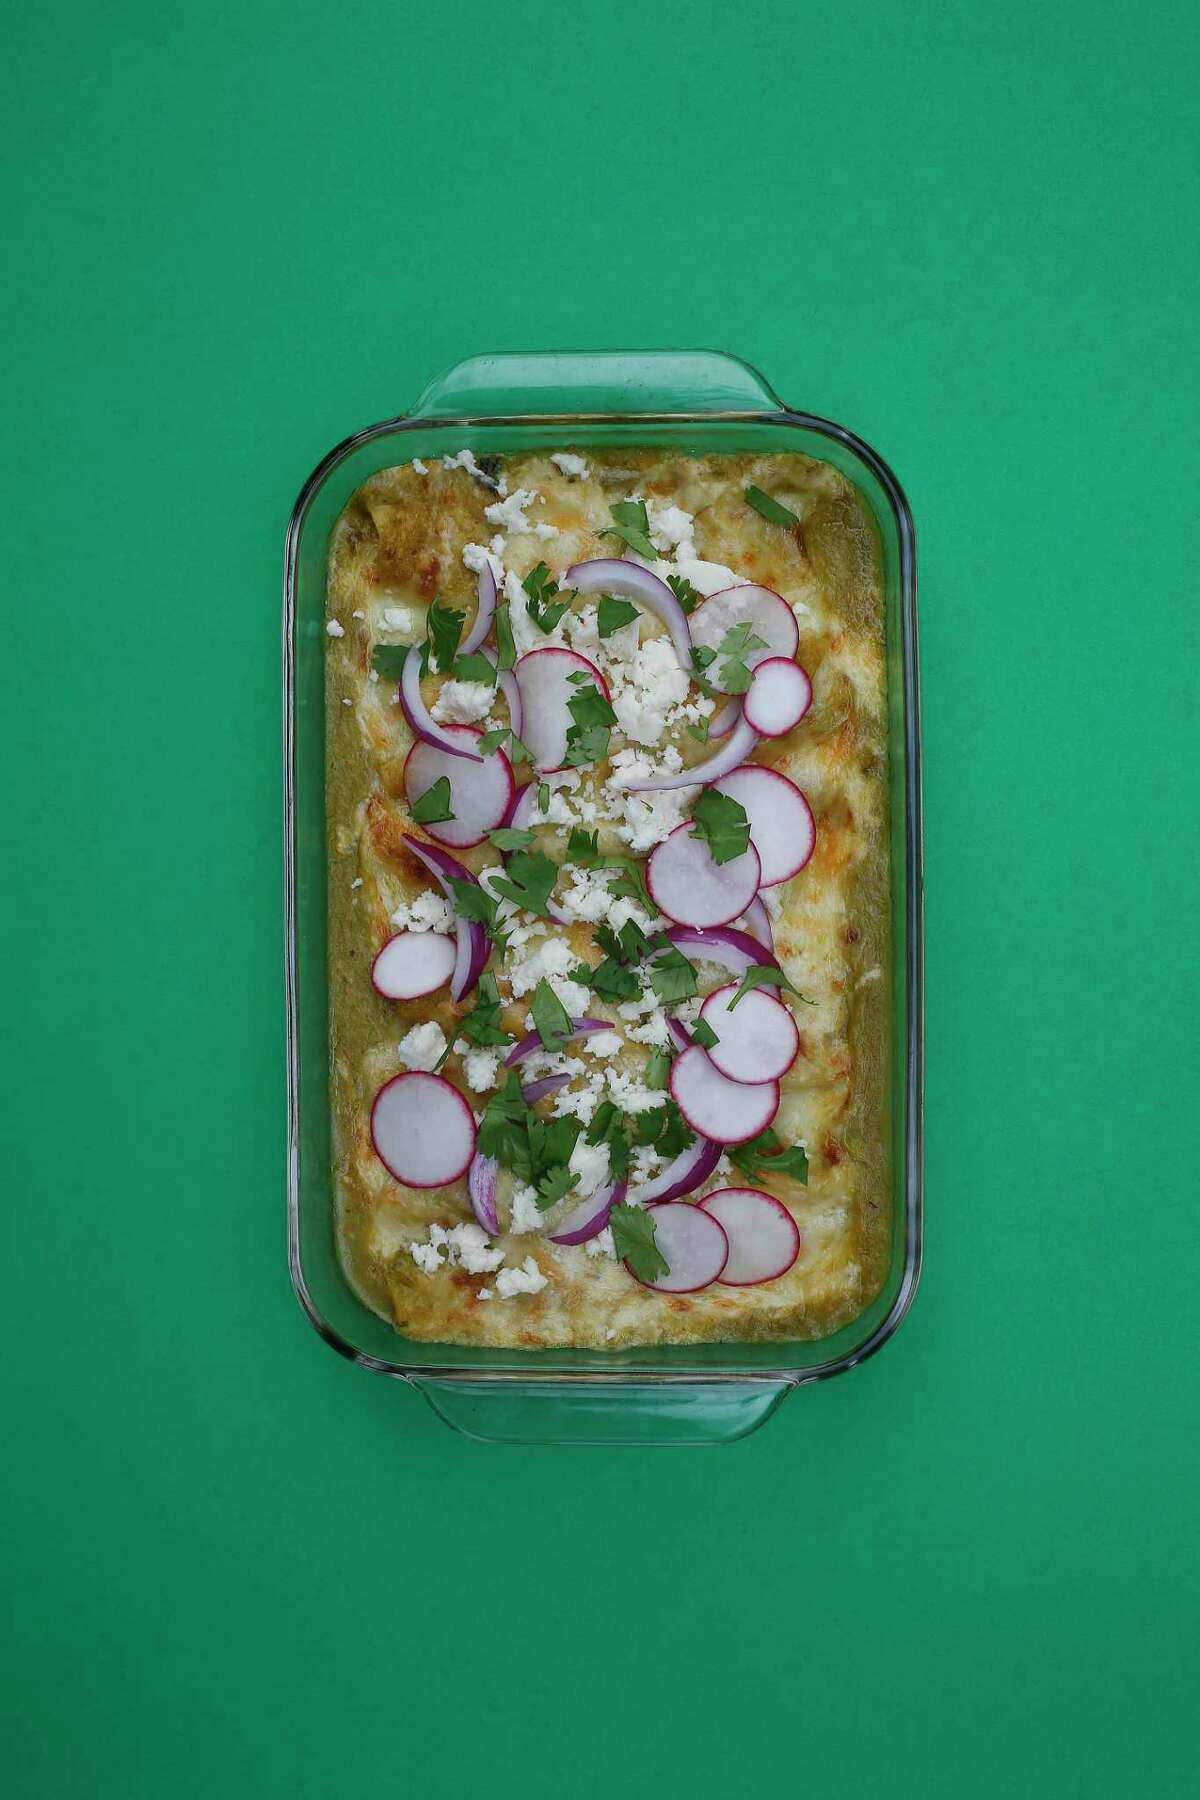 Green Chicken Enchiladas are made with rotisserie chicken and a quick sauce of canned enchilada sauce and tomatillo salsa.